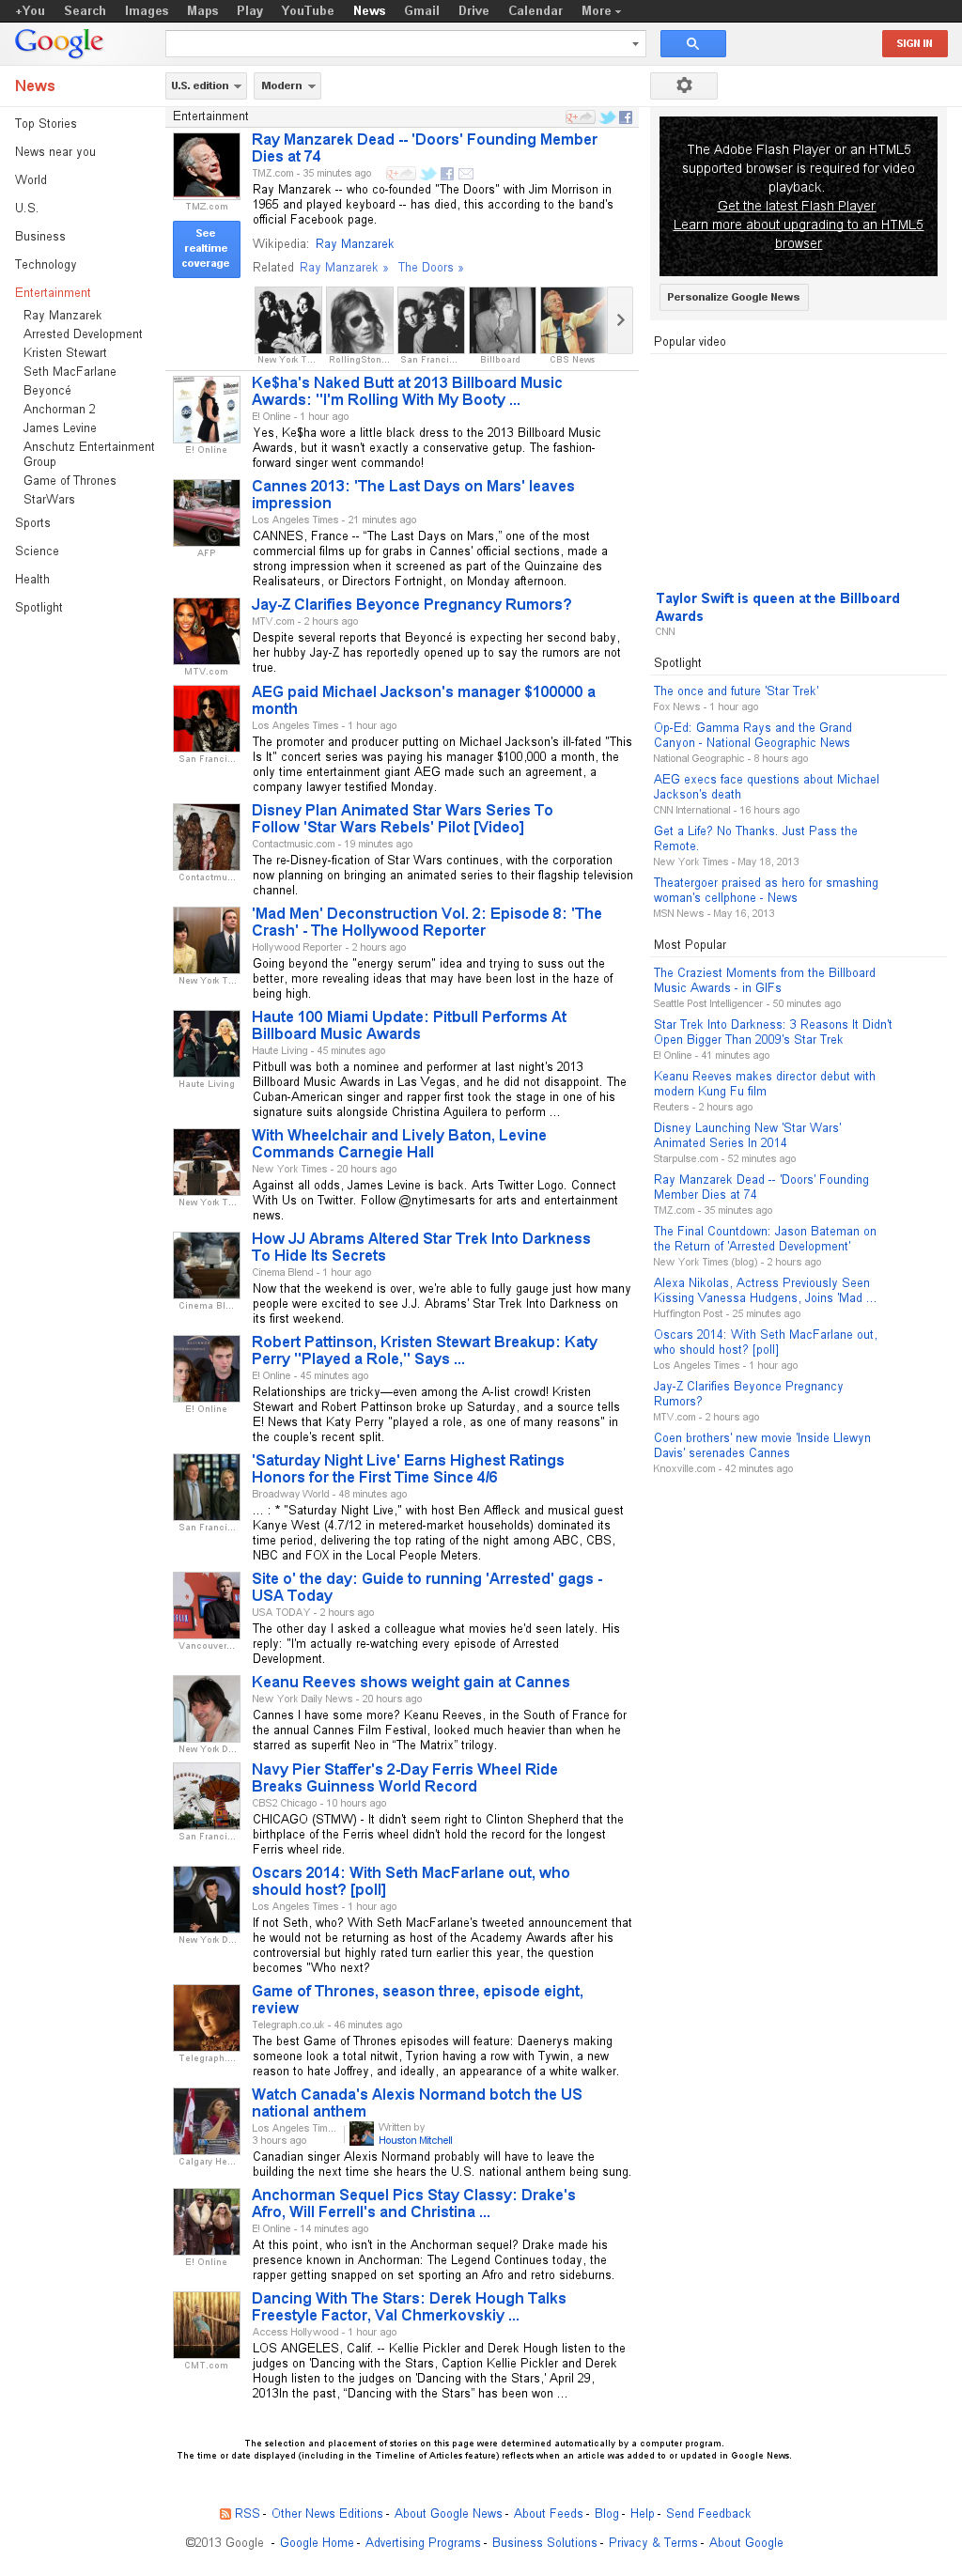 Google News: Entertainment at Monday May 20, 2013, 10:08 p.m. UTC